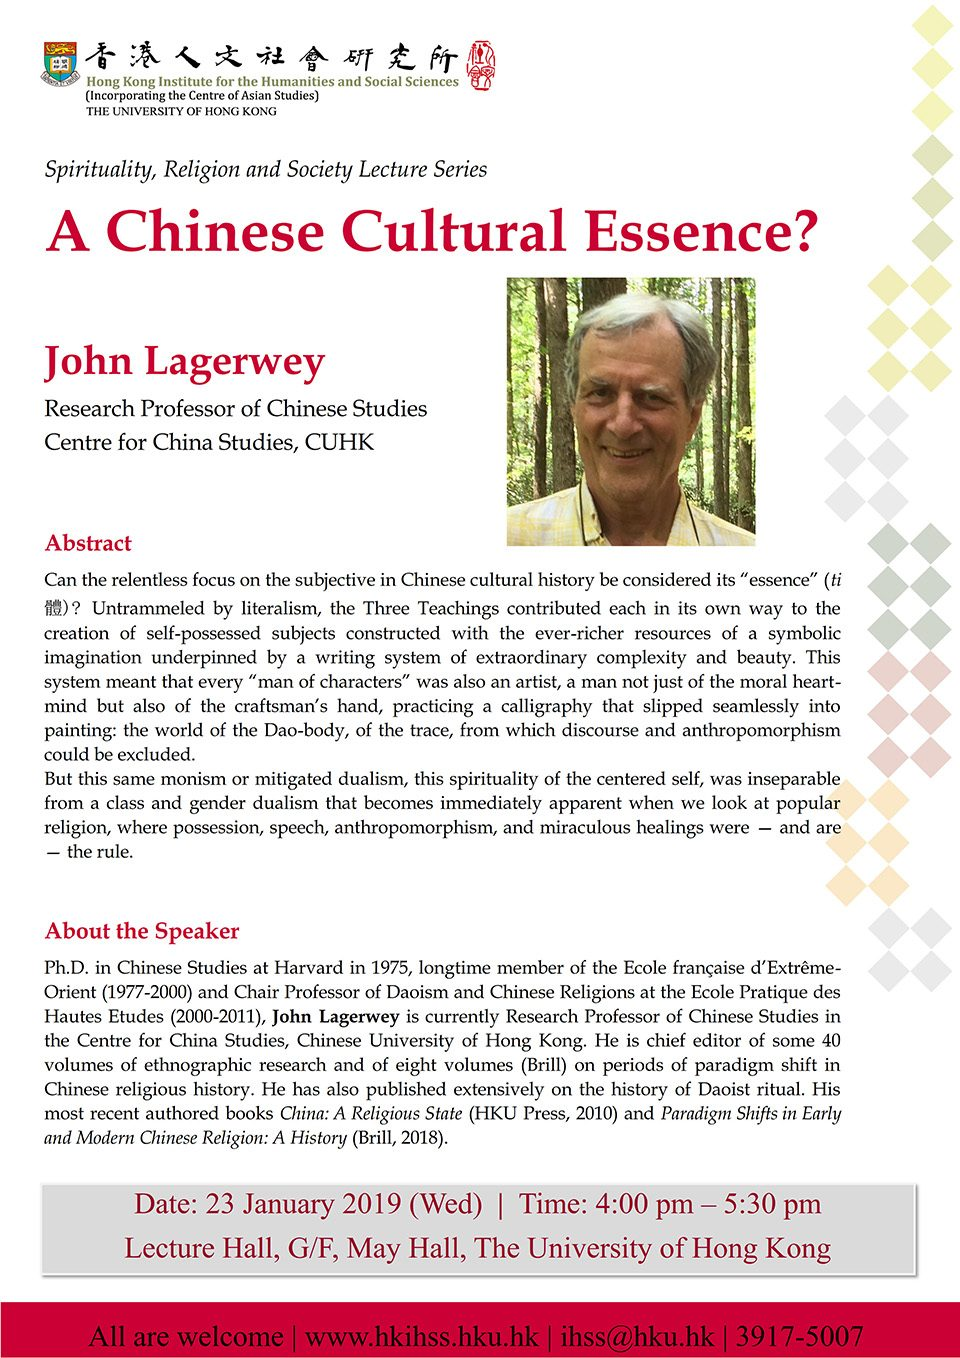 Spirituality, Religion and Society Lecture Series: A Chinese Cultural Essence? by John Lagerwey (January 23, 2019)